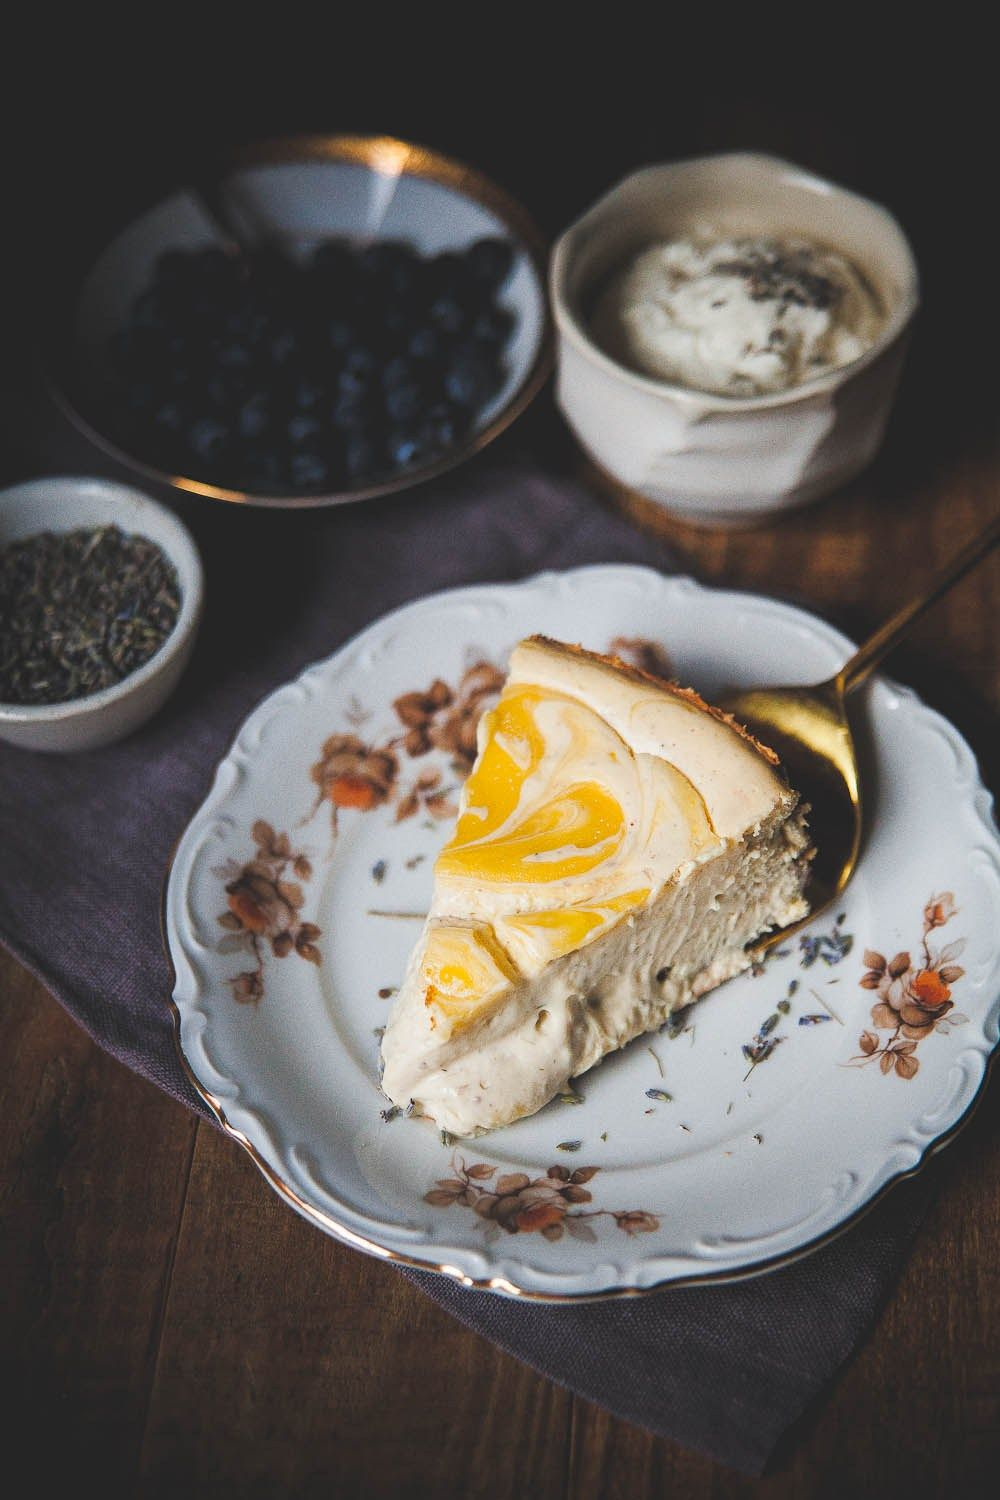 Lavender Lemon Curd Marbled Cheesecake. Lavender and lemon curd come together in a melt-in-your mouth Greek yogurt-based cheesecake, perfect for Spring!